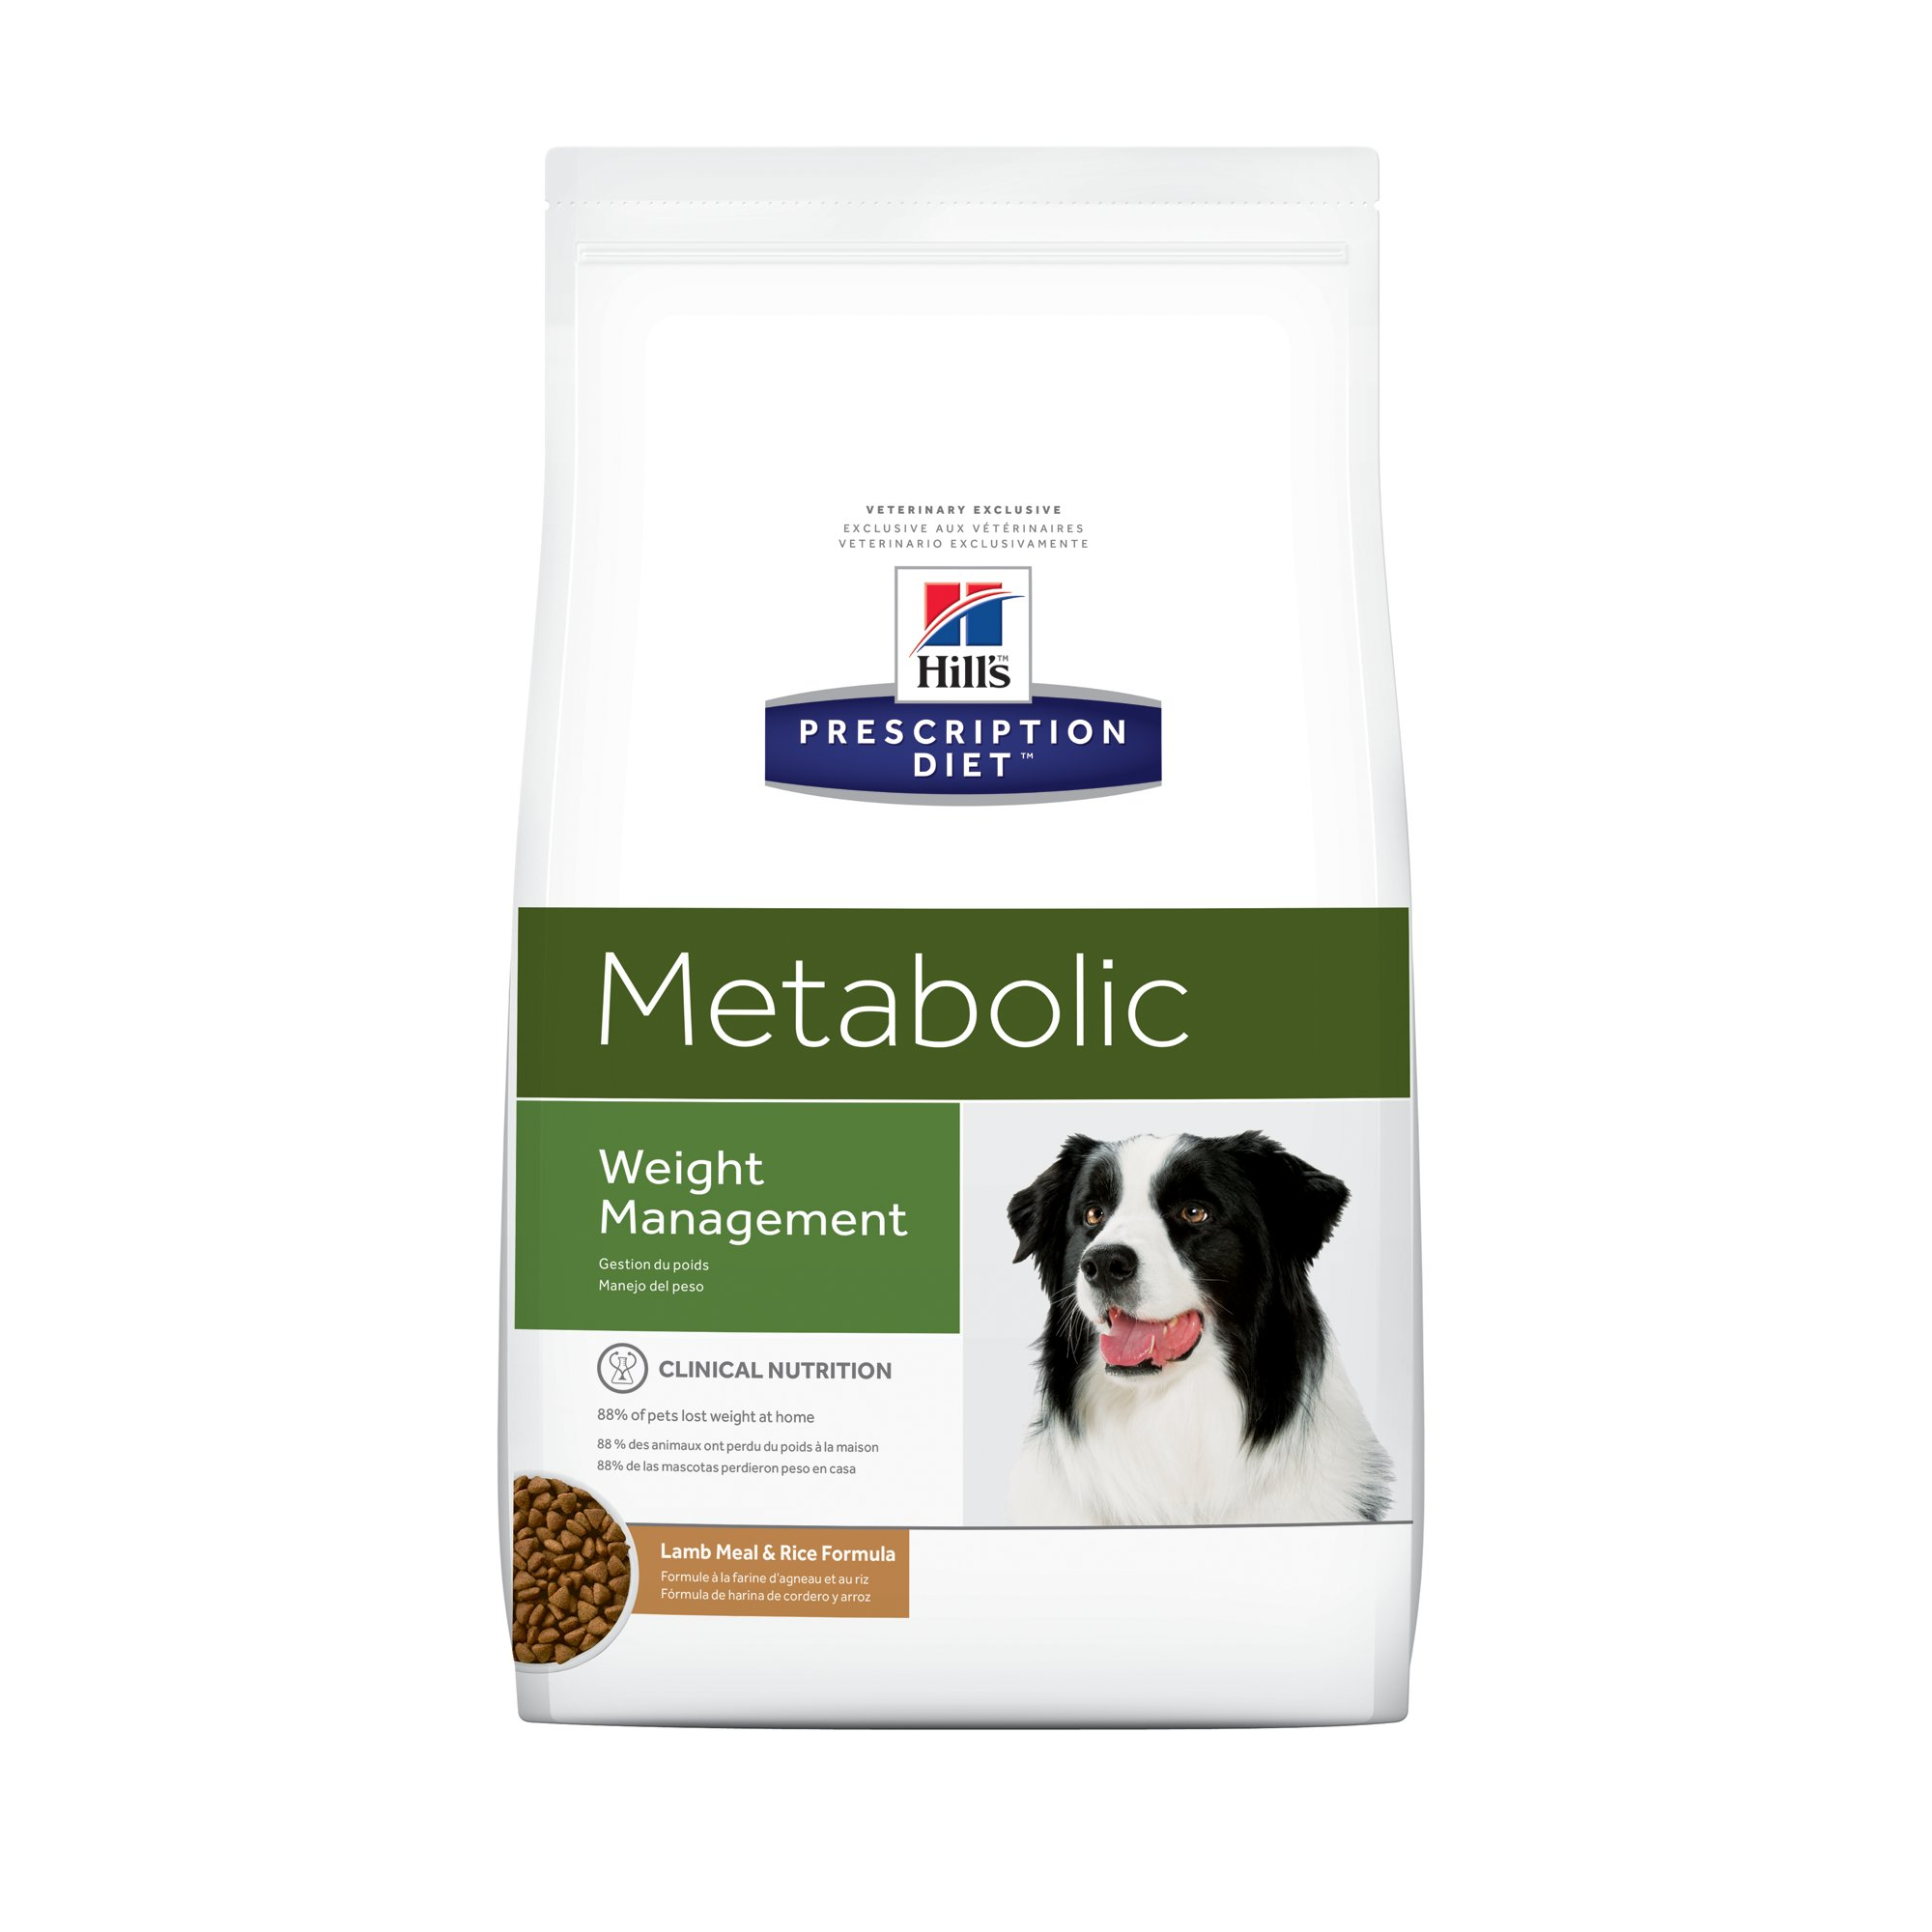 Hill's Prescription Diet Metabolic Weight Management Lamb Meal & Rice Formula Dry Dog Food, 6 lbs., Bag